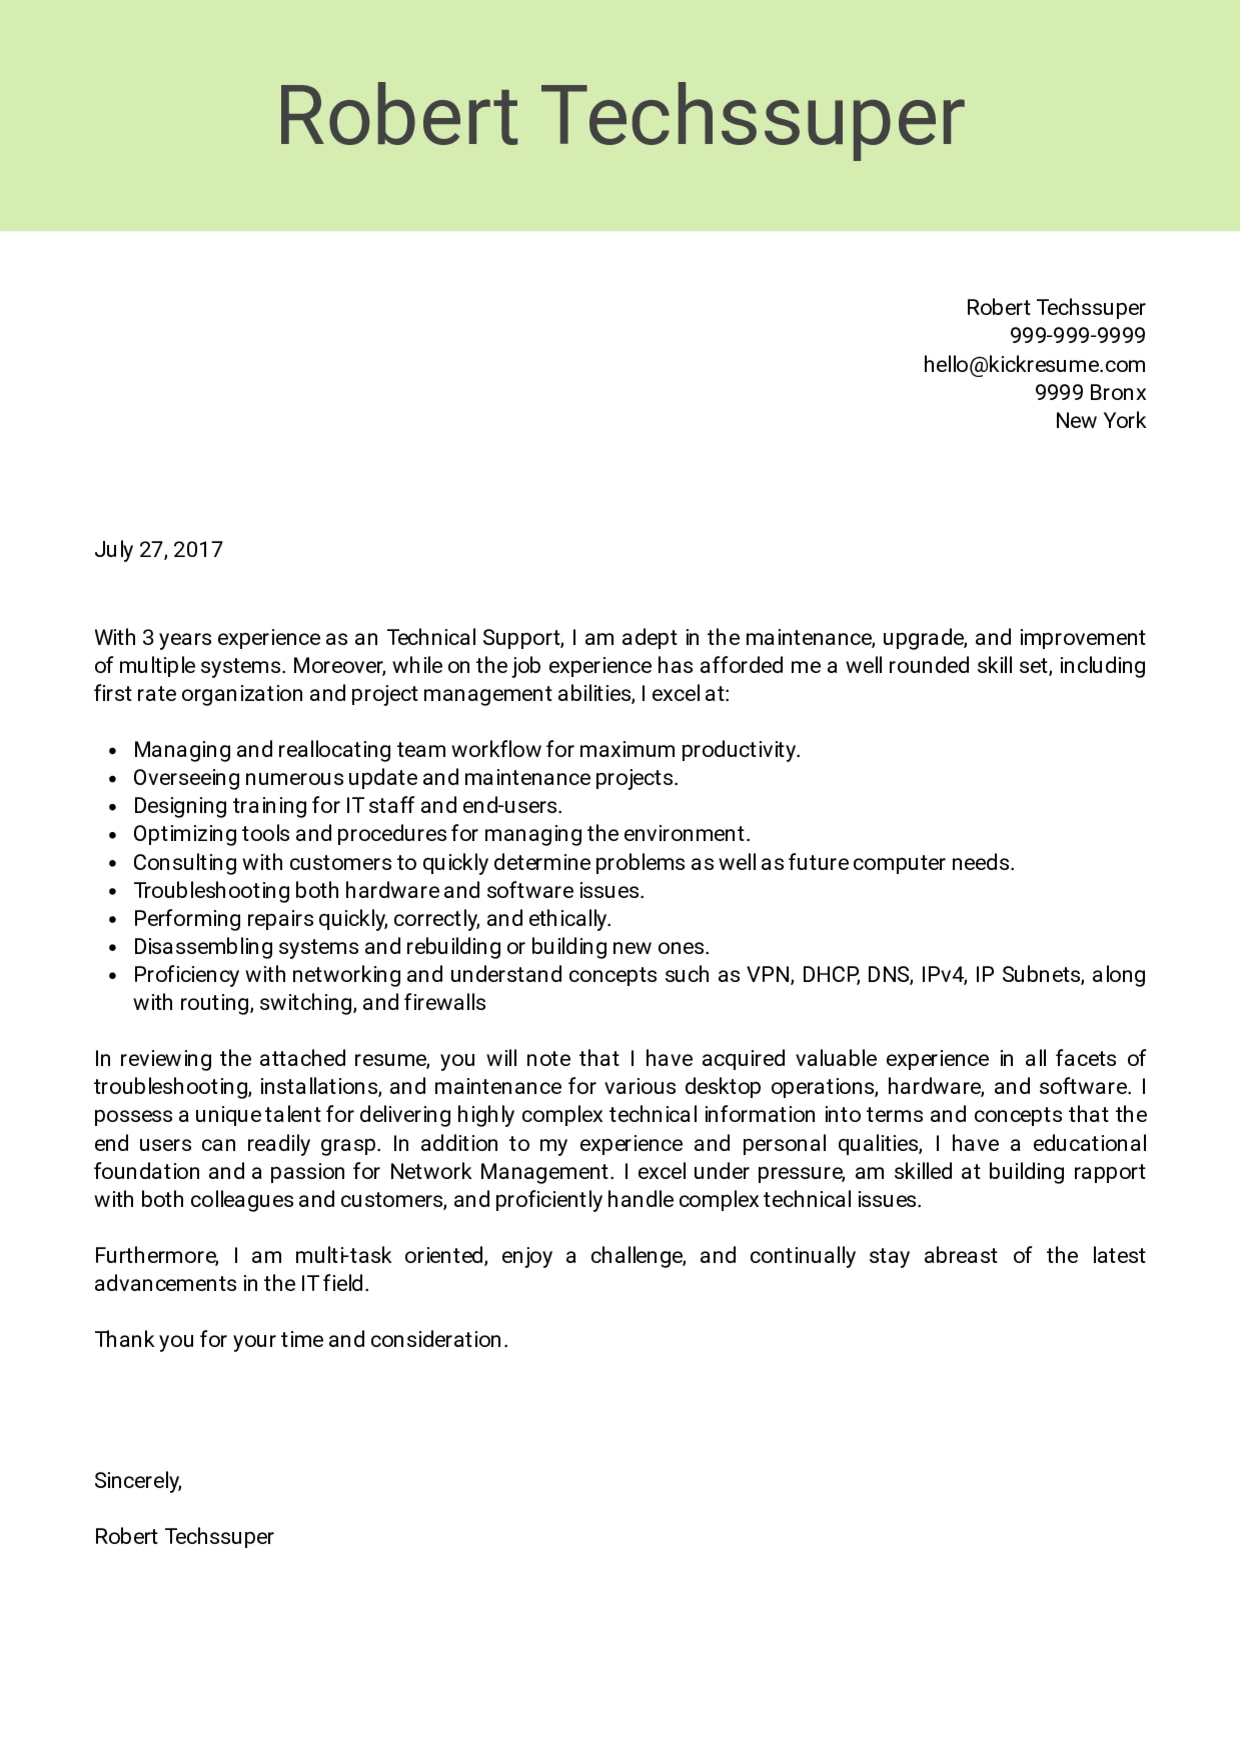 Cover Letter Sample Without Experience